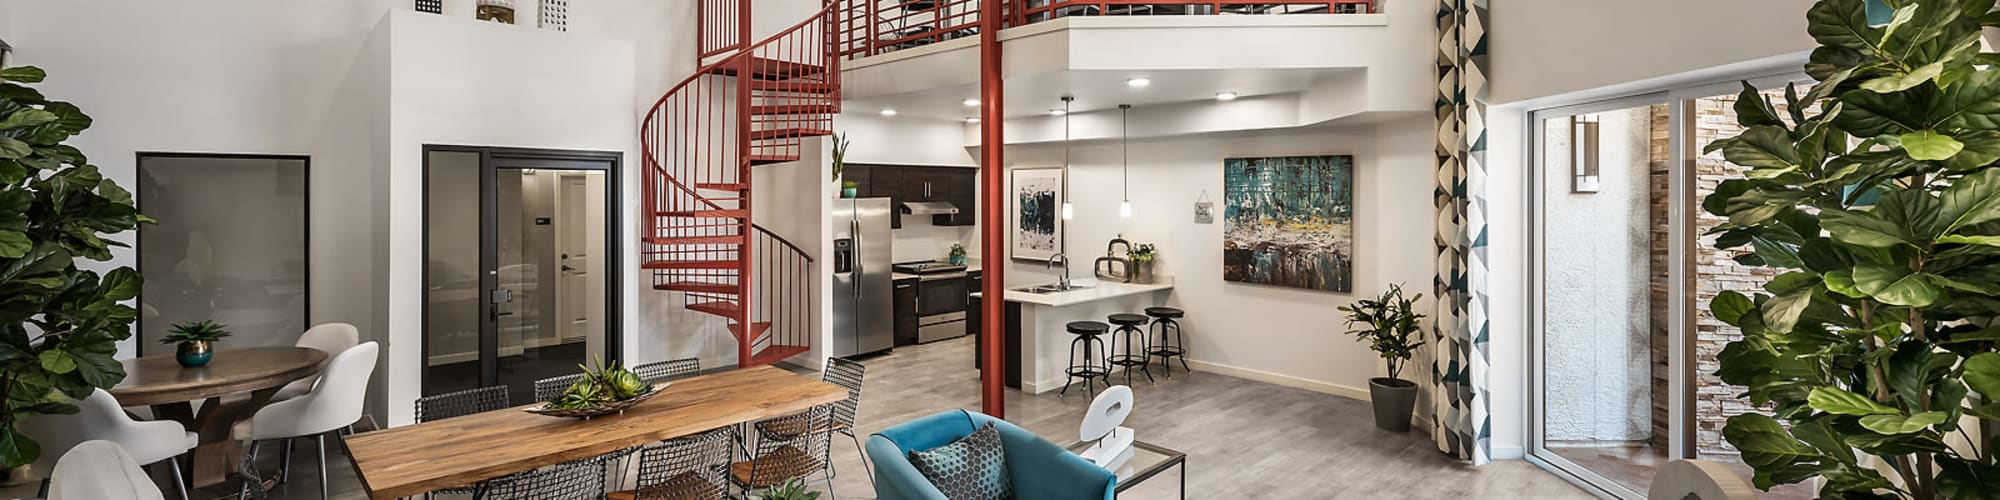 Amenities at Park Place at Fountain Hills in Fountain Hills, Arizona